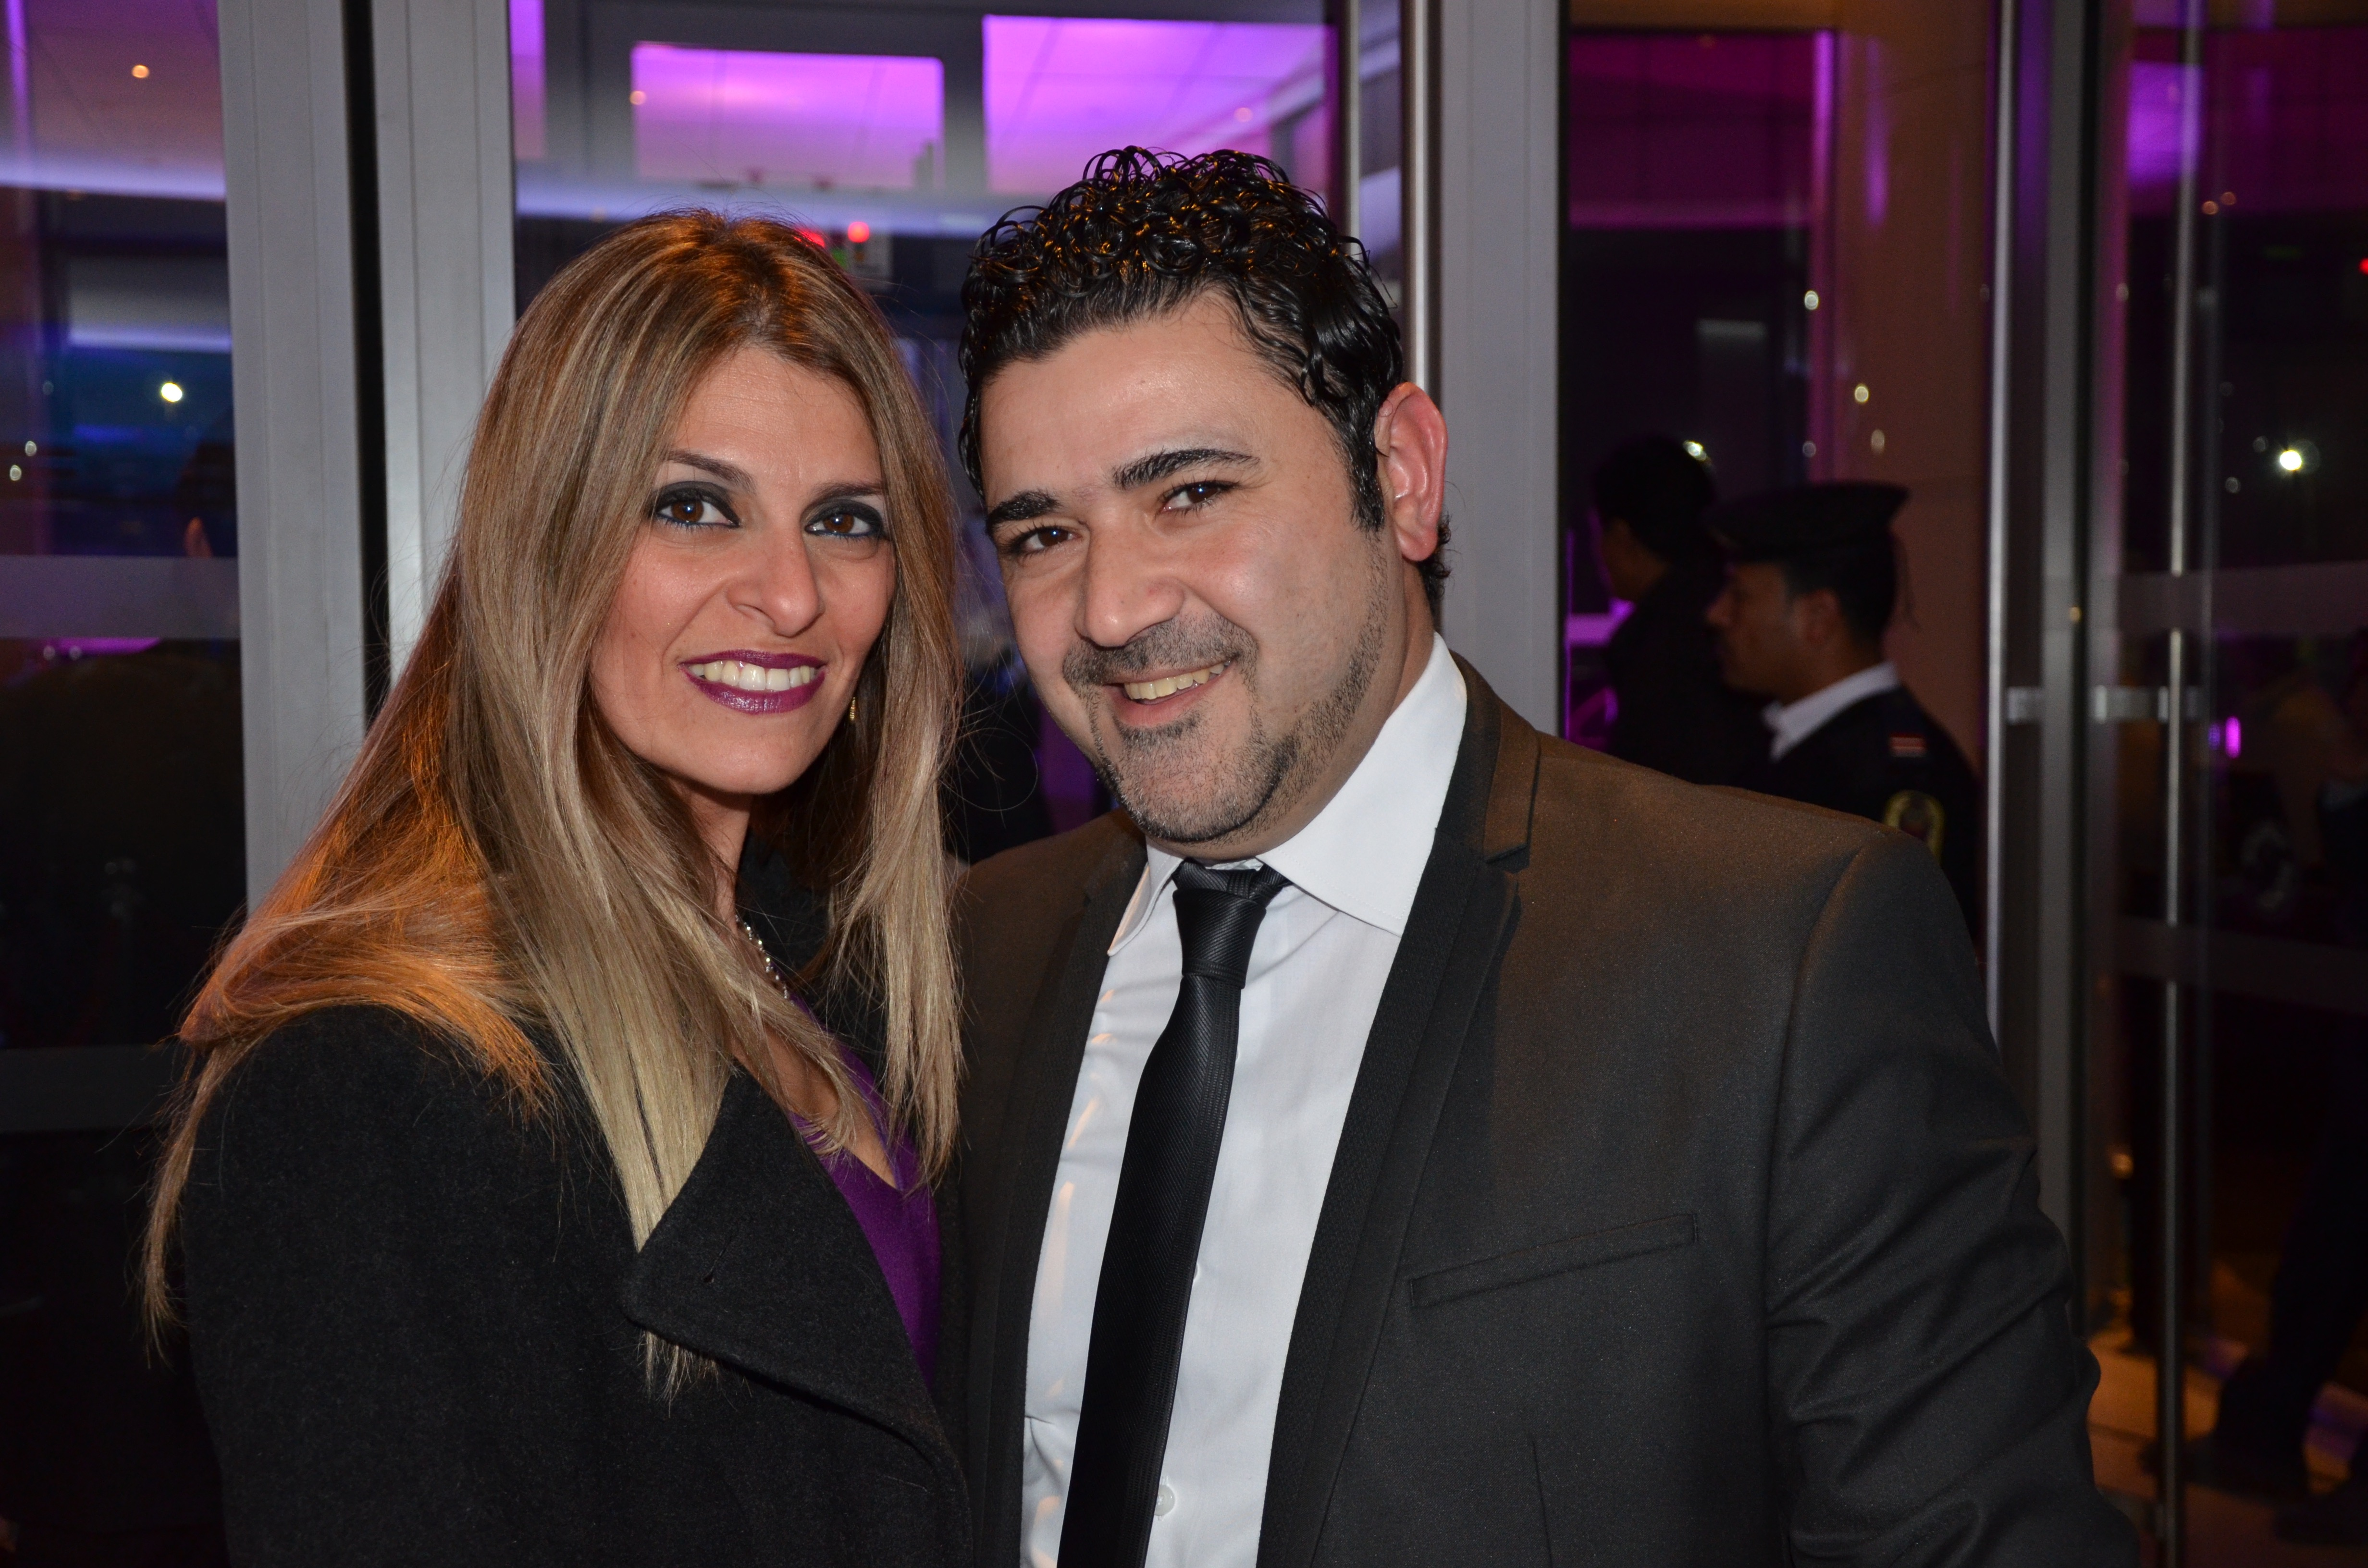 Fady Cotta and Alice Wakid